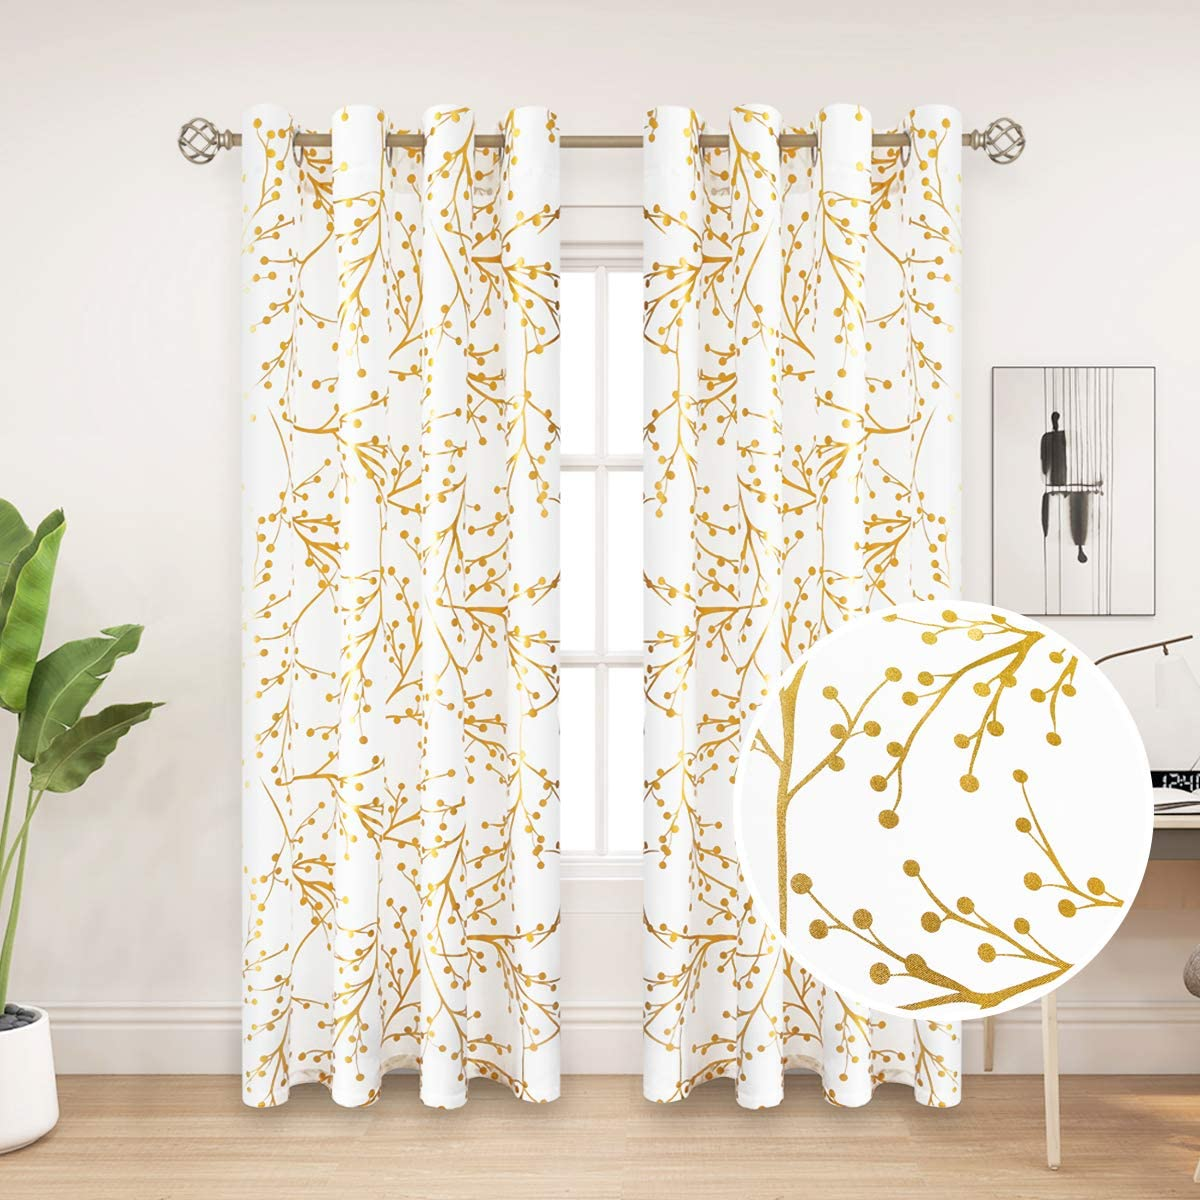 PLWORLD White Yellow Semi-Sheer Curtains 84 Inches Long for Living Room and Bedroom, Fruit Tree Metal Printing on Canvas Window Treatment Drapes with Grommets, 55×84, 2 Panels